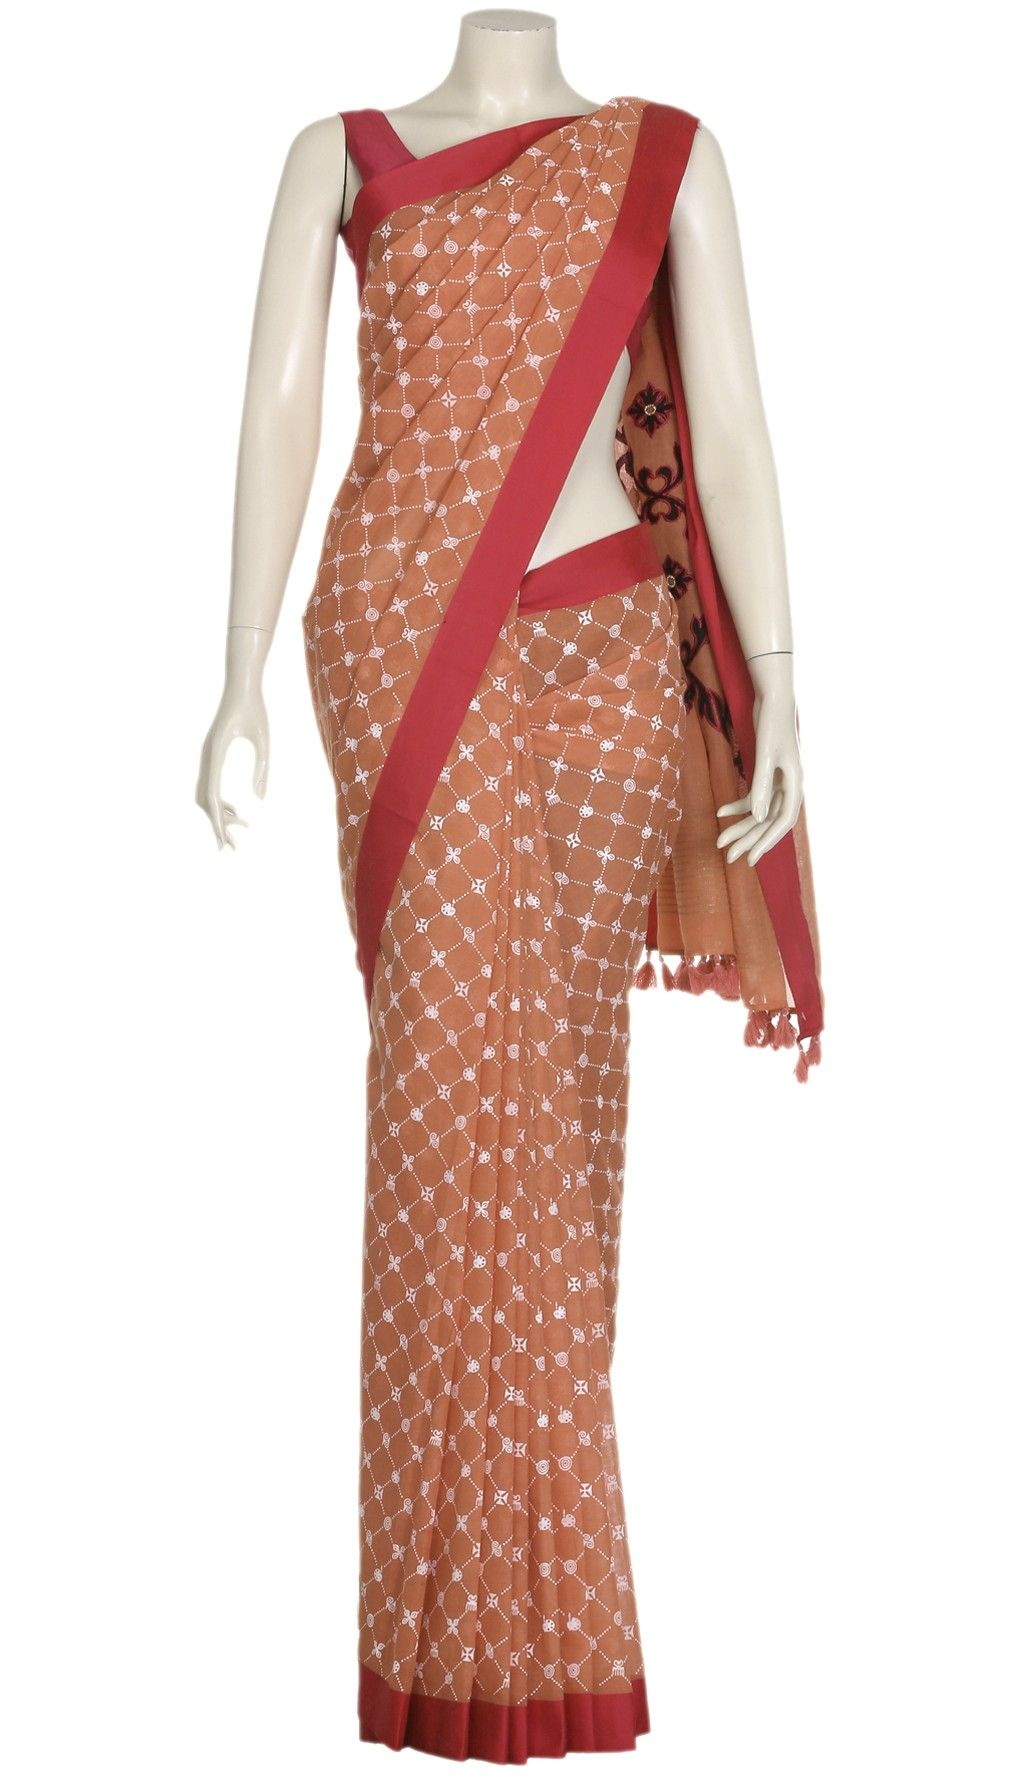 Peach Printed and Appliquéd Cotton Saree